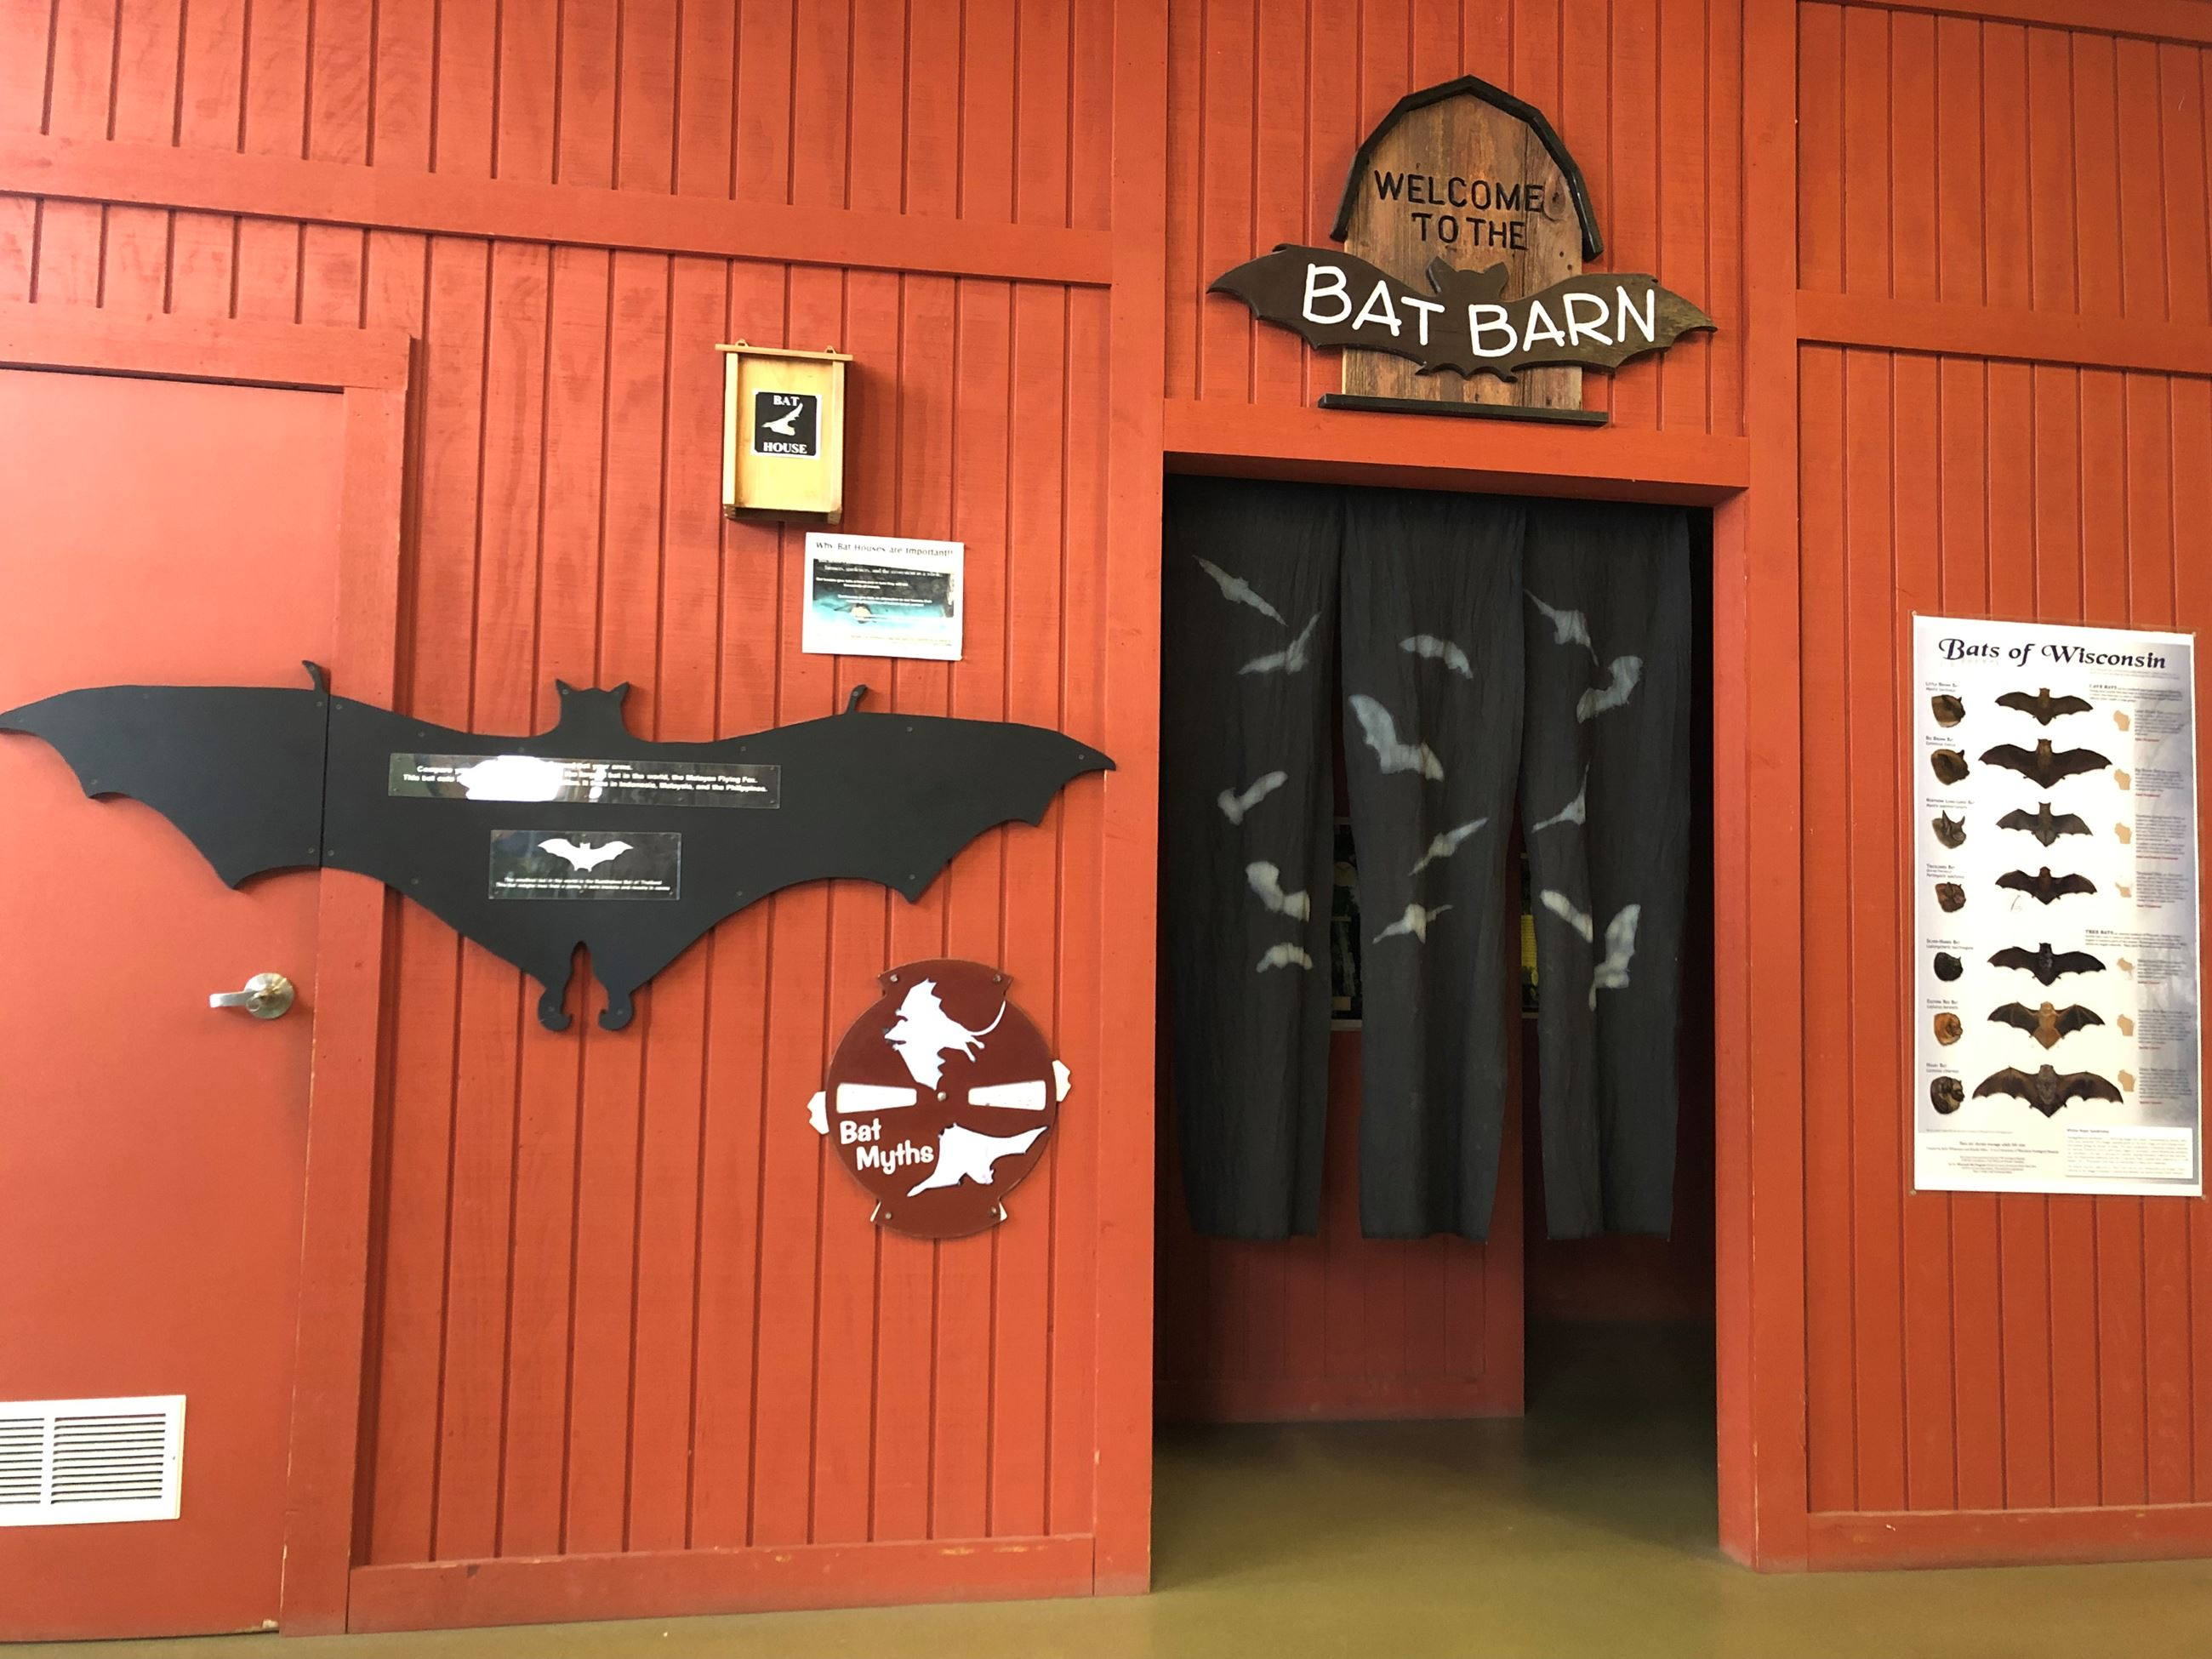 A red wooden wall that has a sign that says Bat barn on it. There is a large black cutout of a bat o